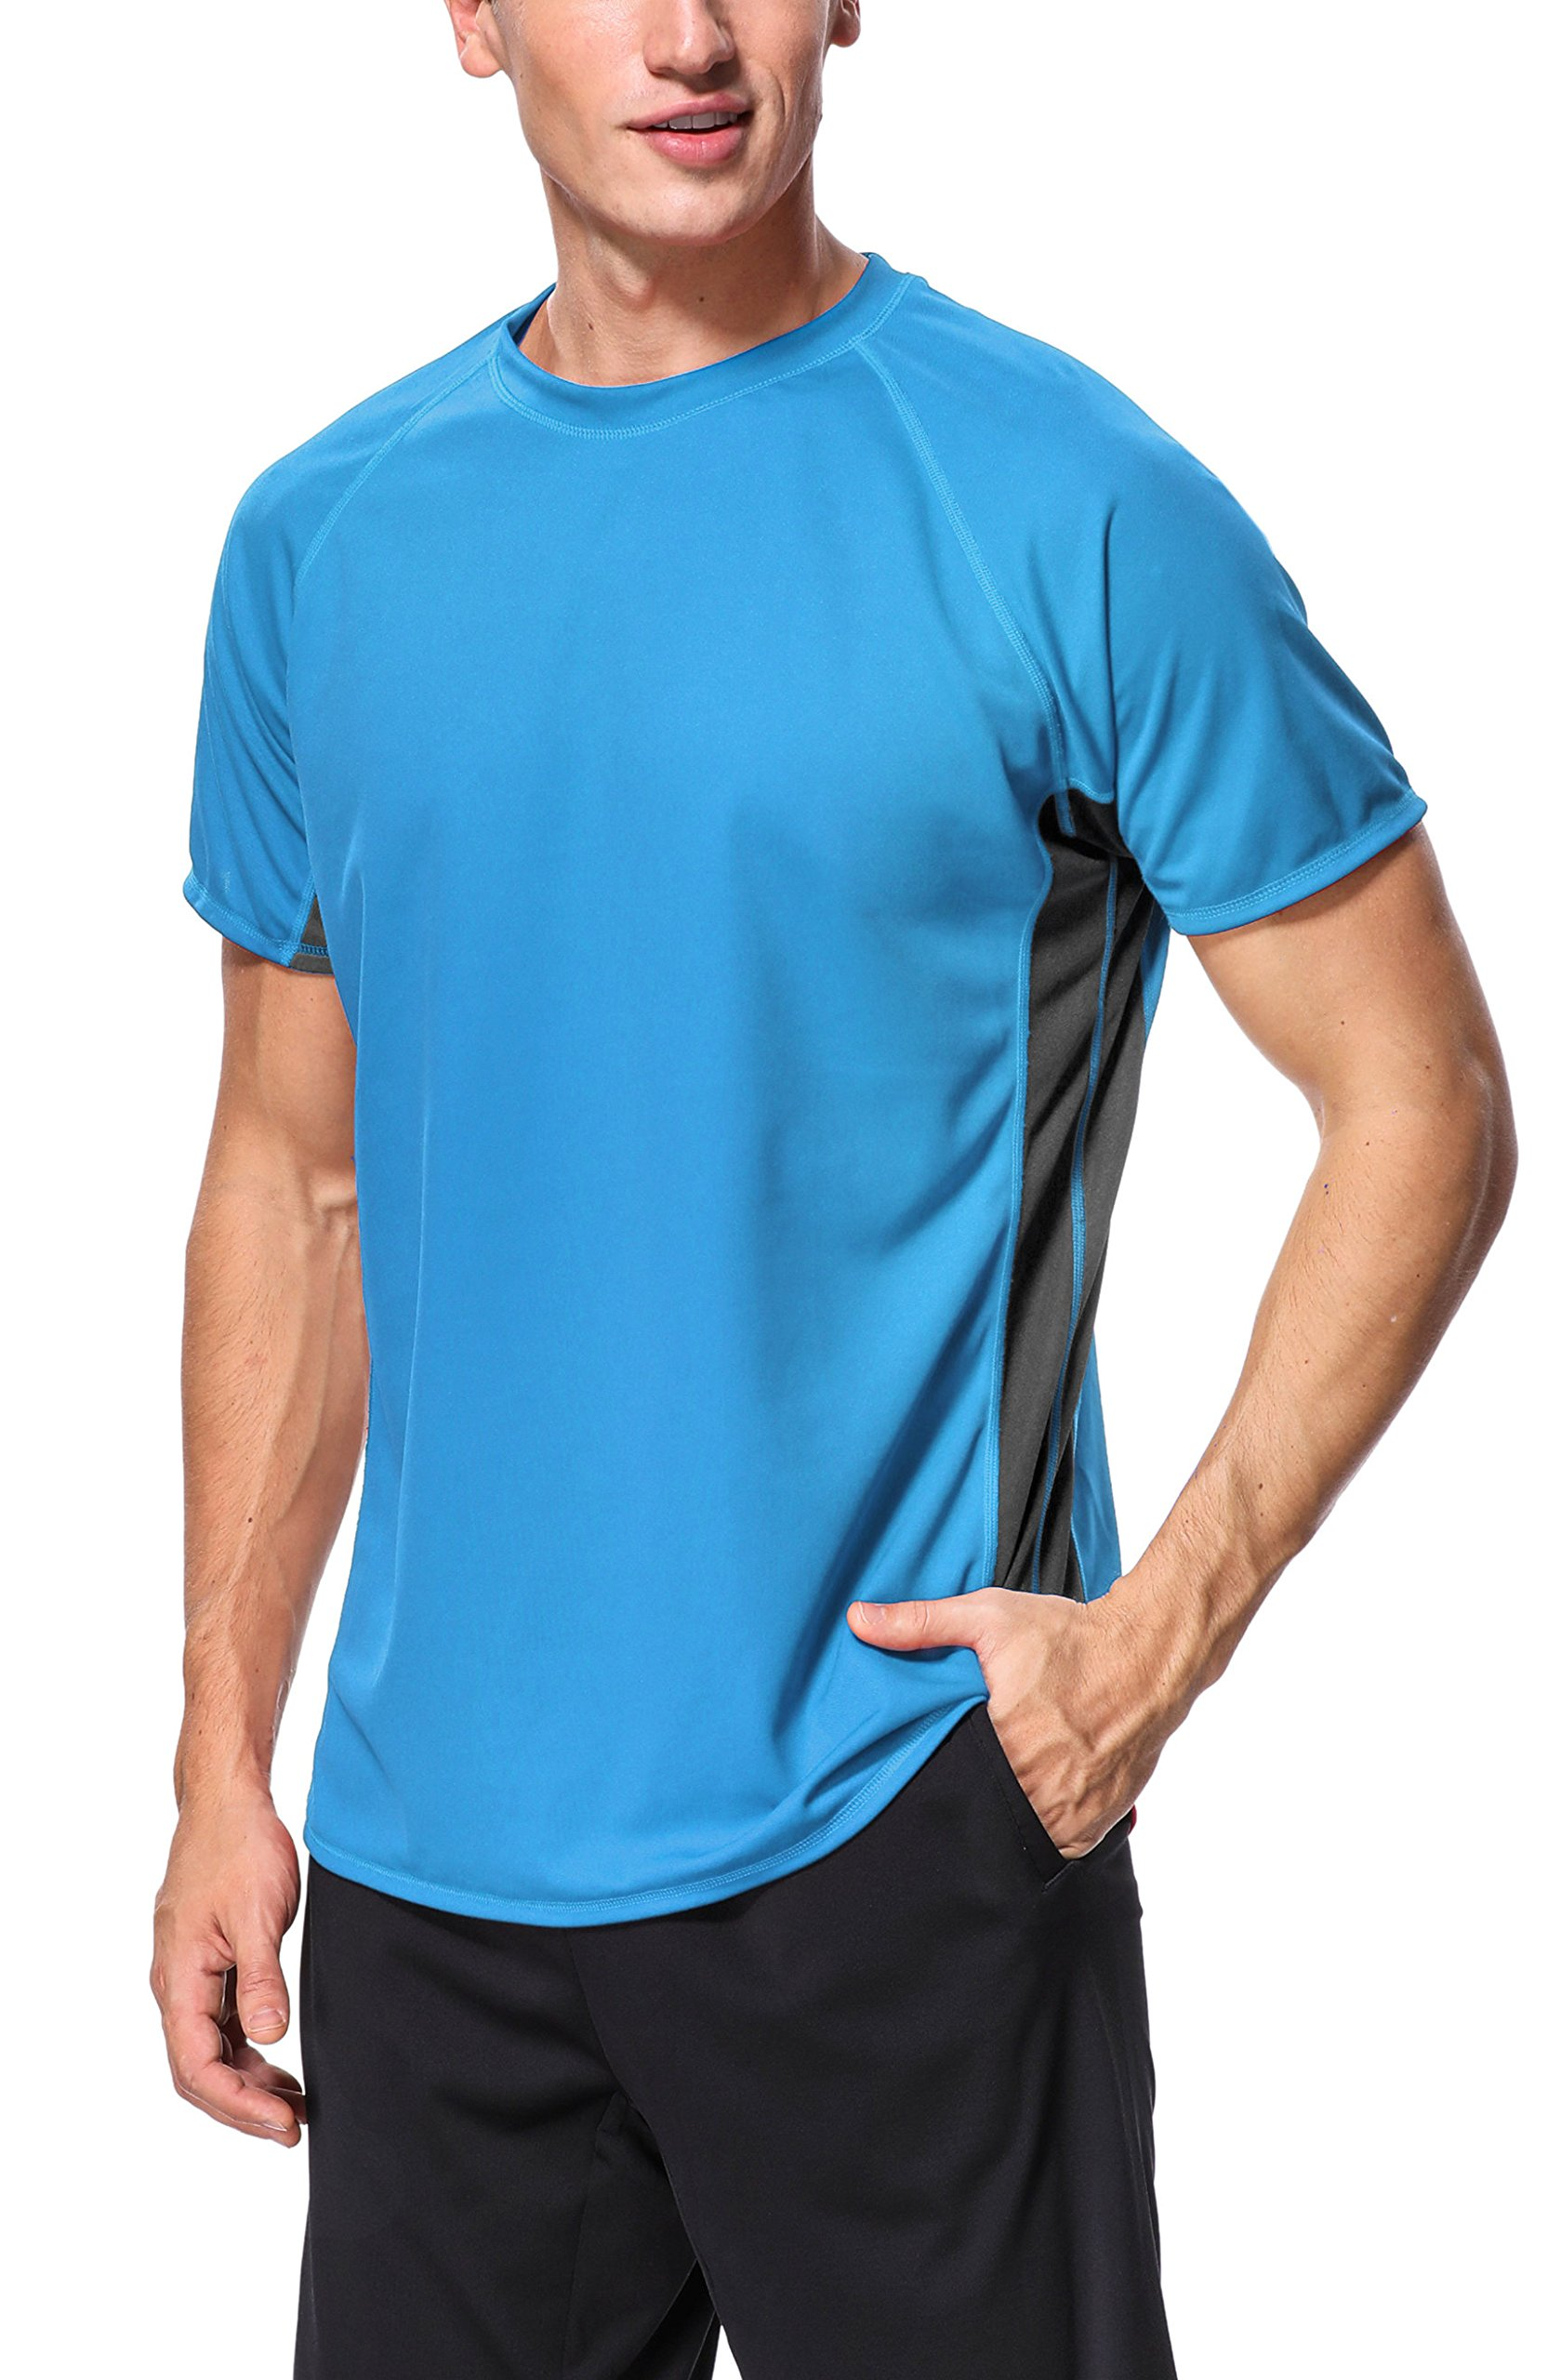 belamo Rashguard Swim tee for Mens Short Sleeve Sun Protection Shirt Sun Shirt